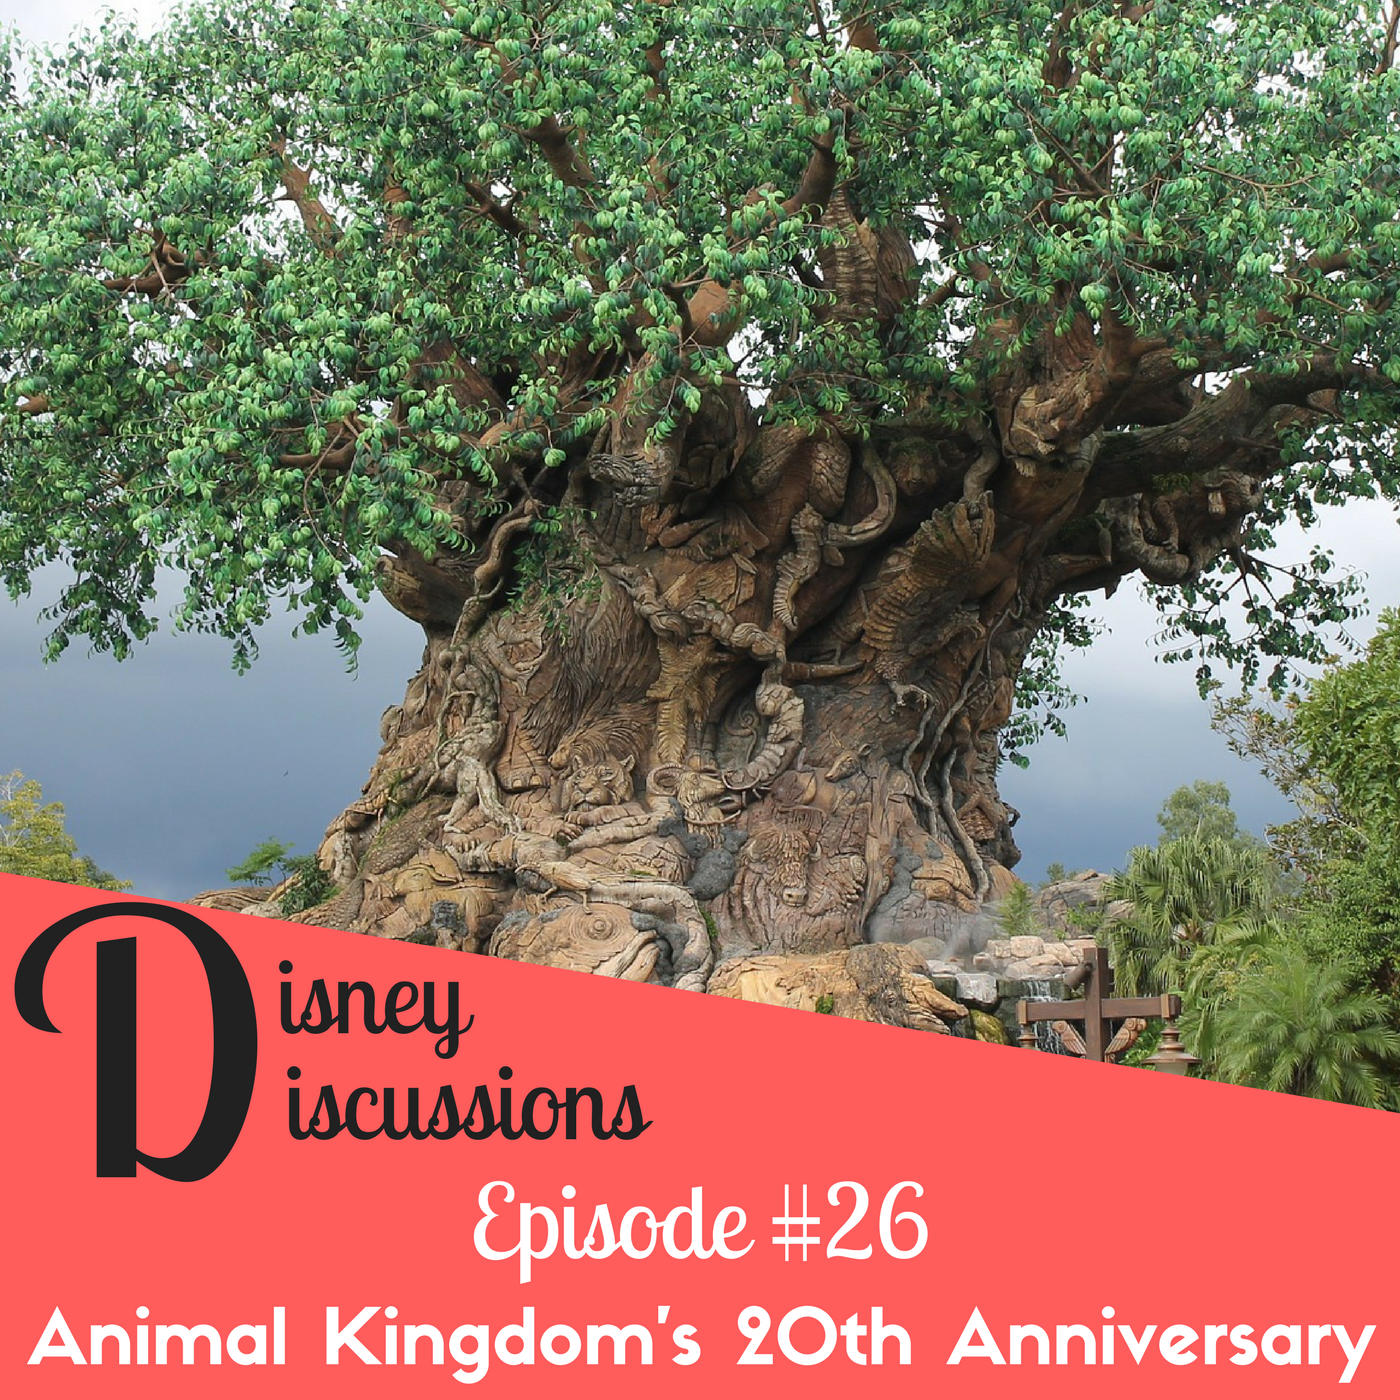 Animal Kingdom has a Birthday, Marvel land needs a new name, new Star Wars hotel experience and more! - Disney Discussions